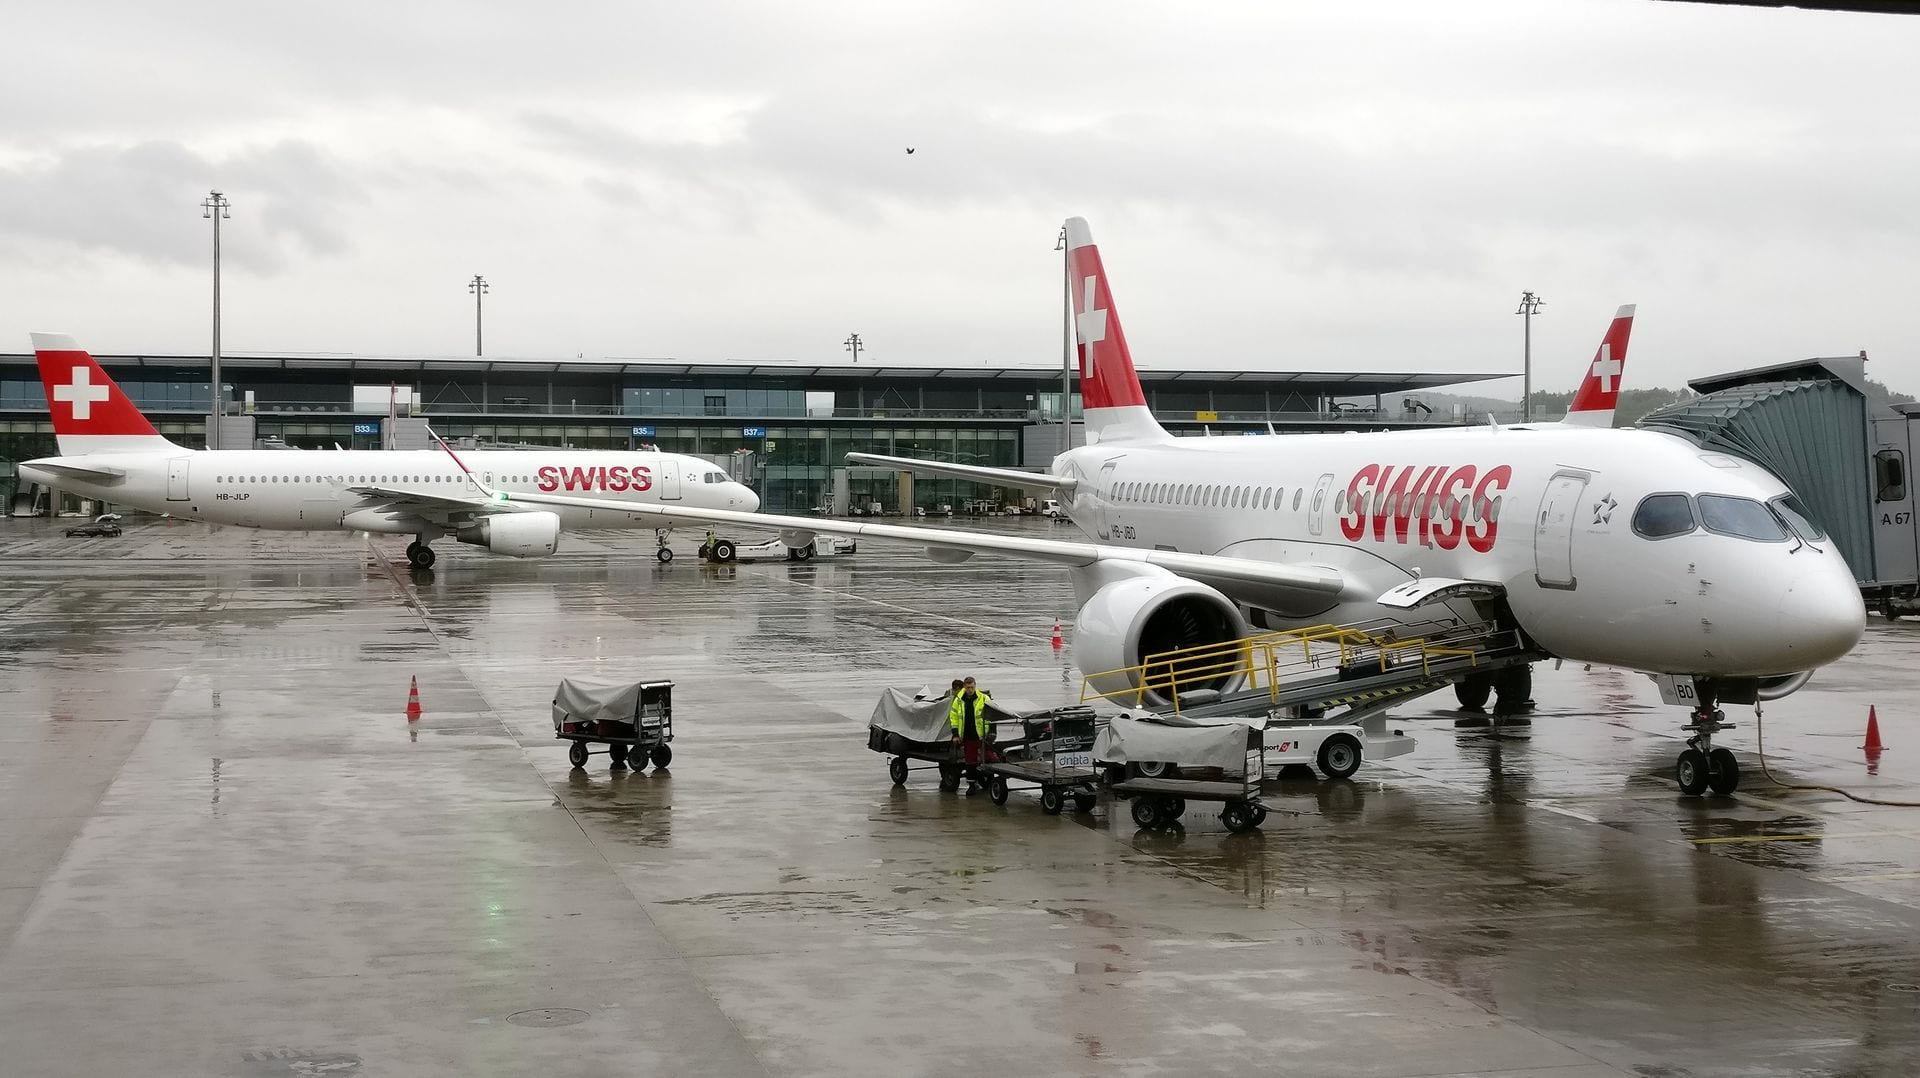 Swiss CS 100 Airbus A319